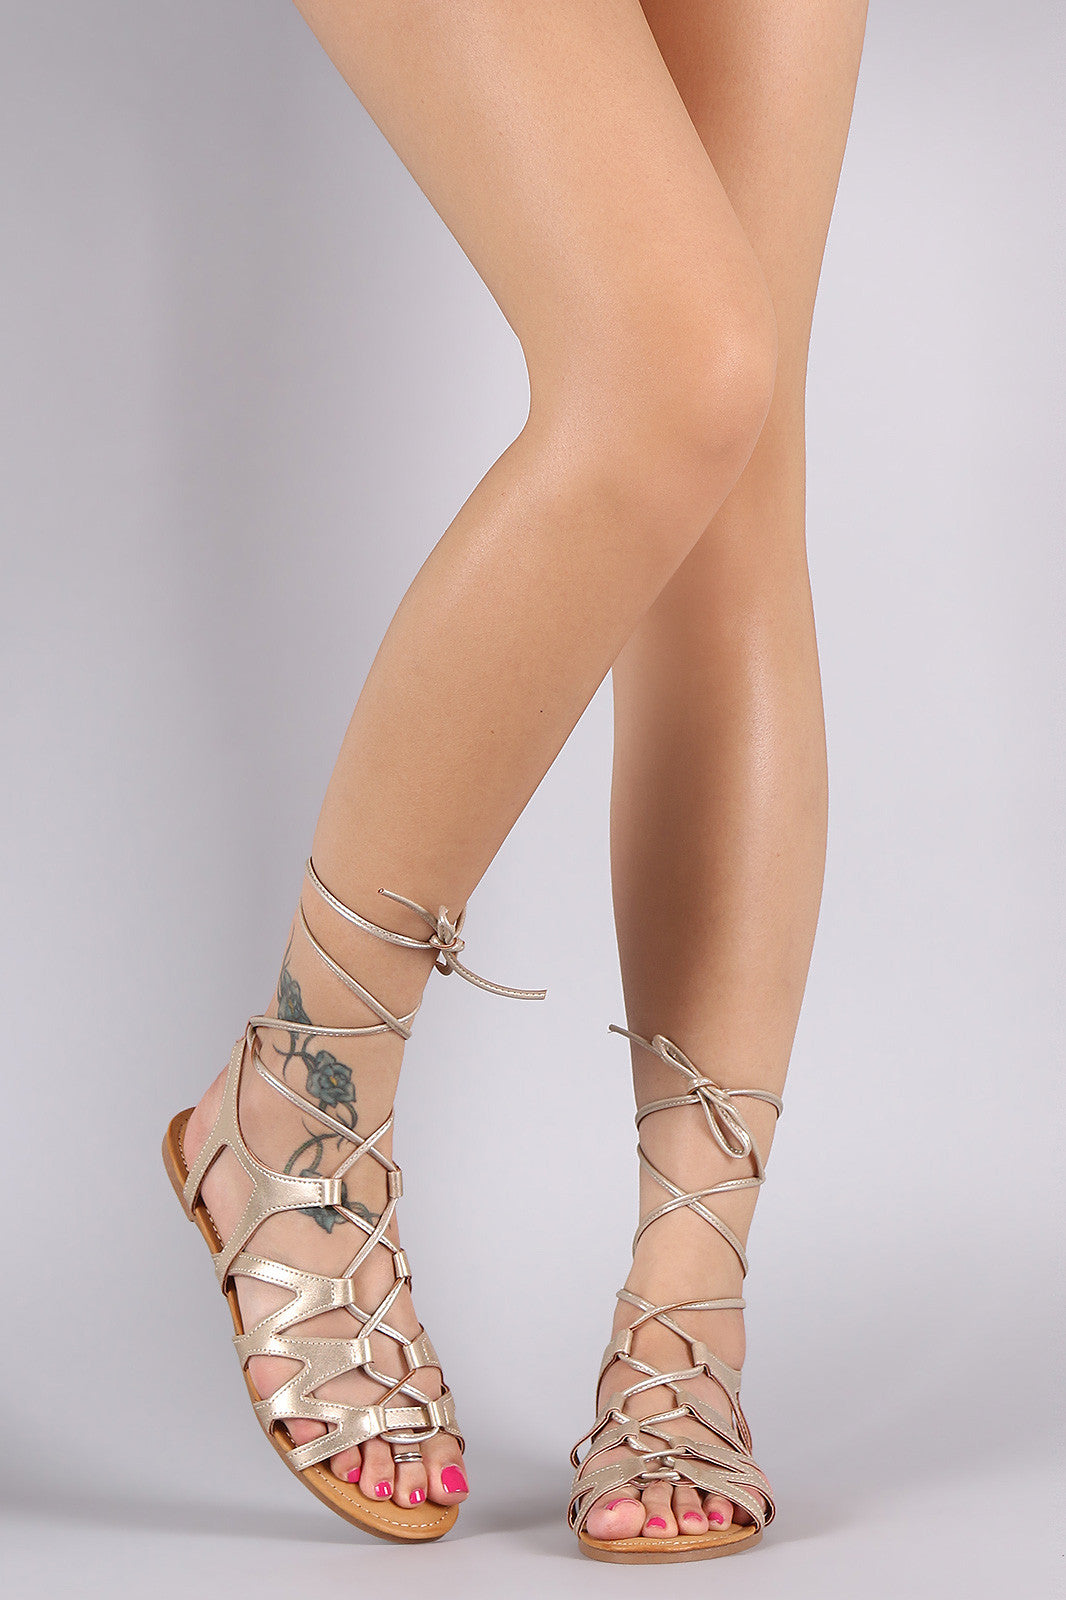 Bamboo Leg Wrap Lace Up Gladiator Sandal - Thick 'N' Curvy Shop - 1